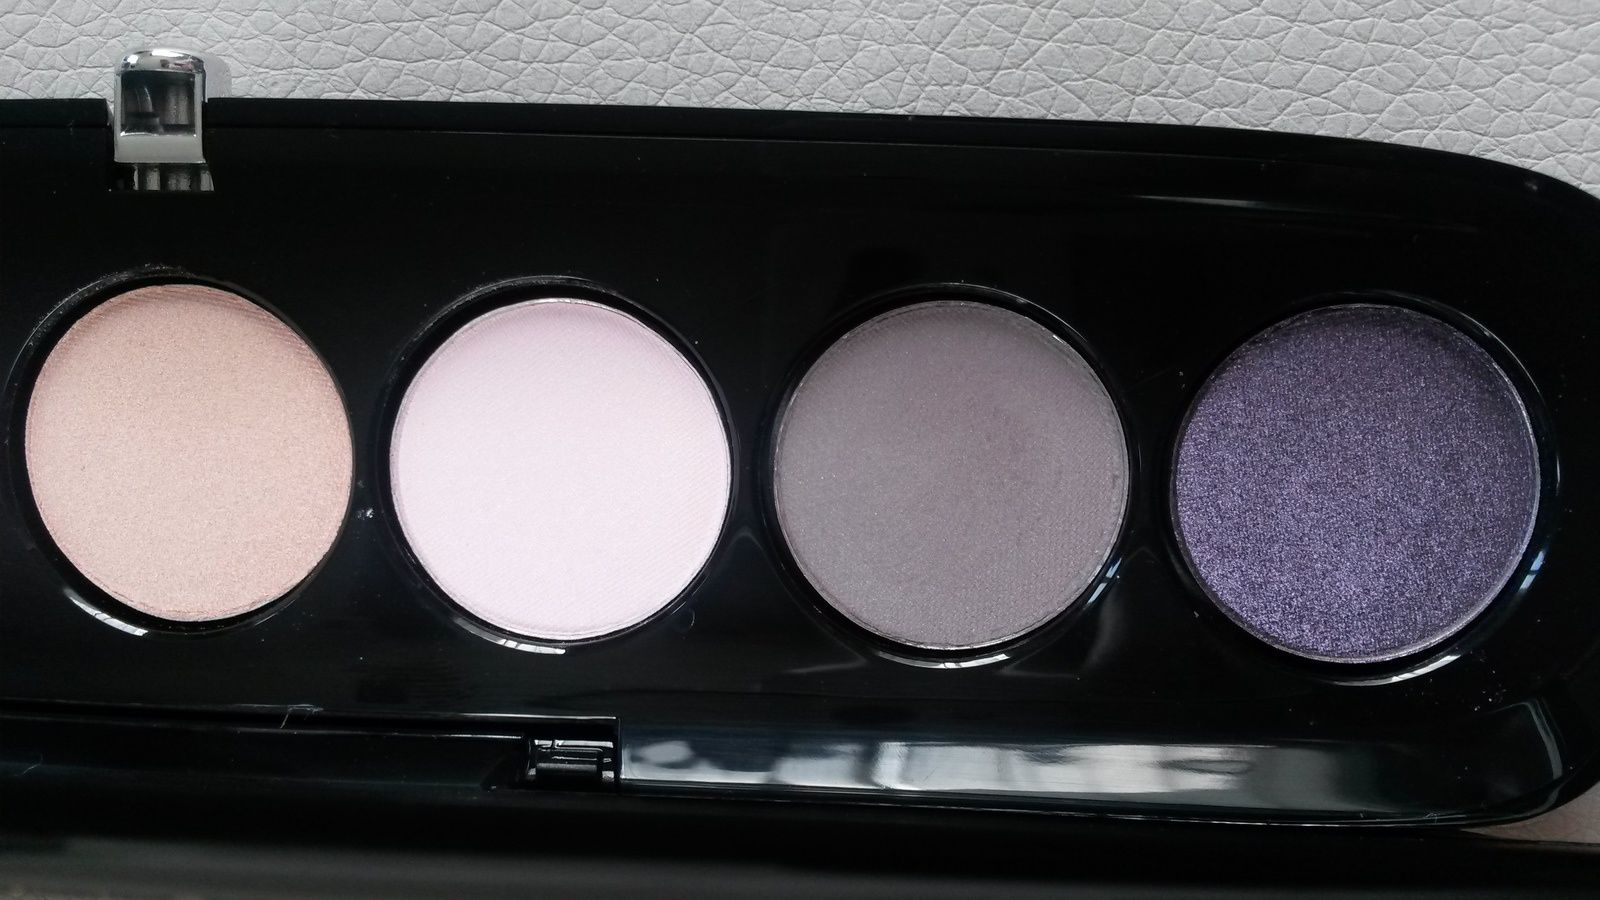 'The Tease' la palette glamour par Marc Jacobs !